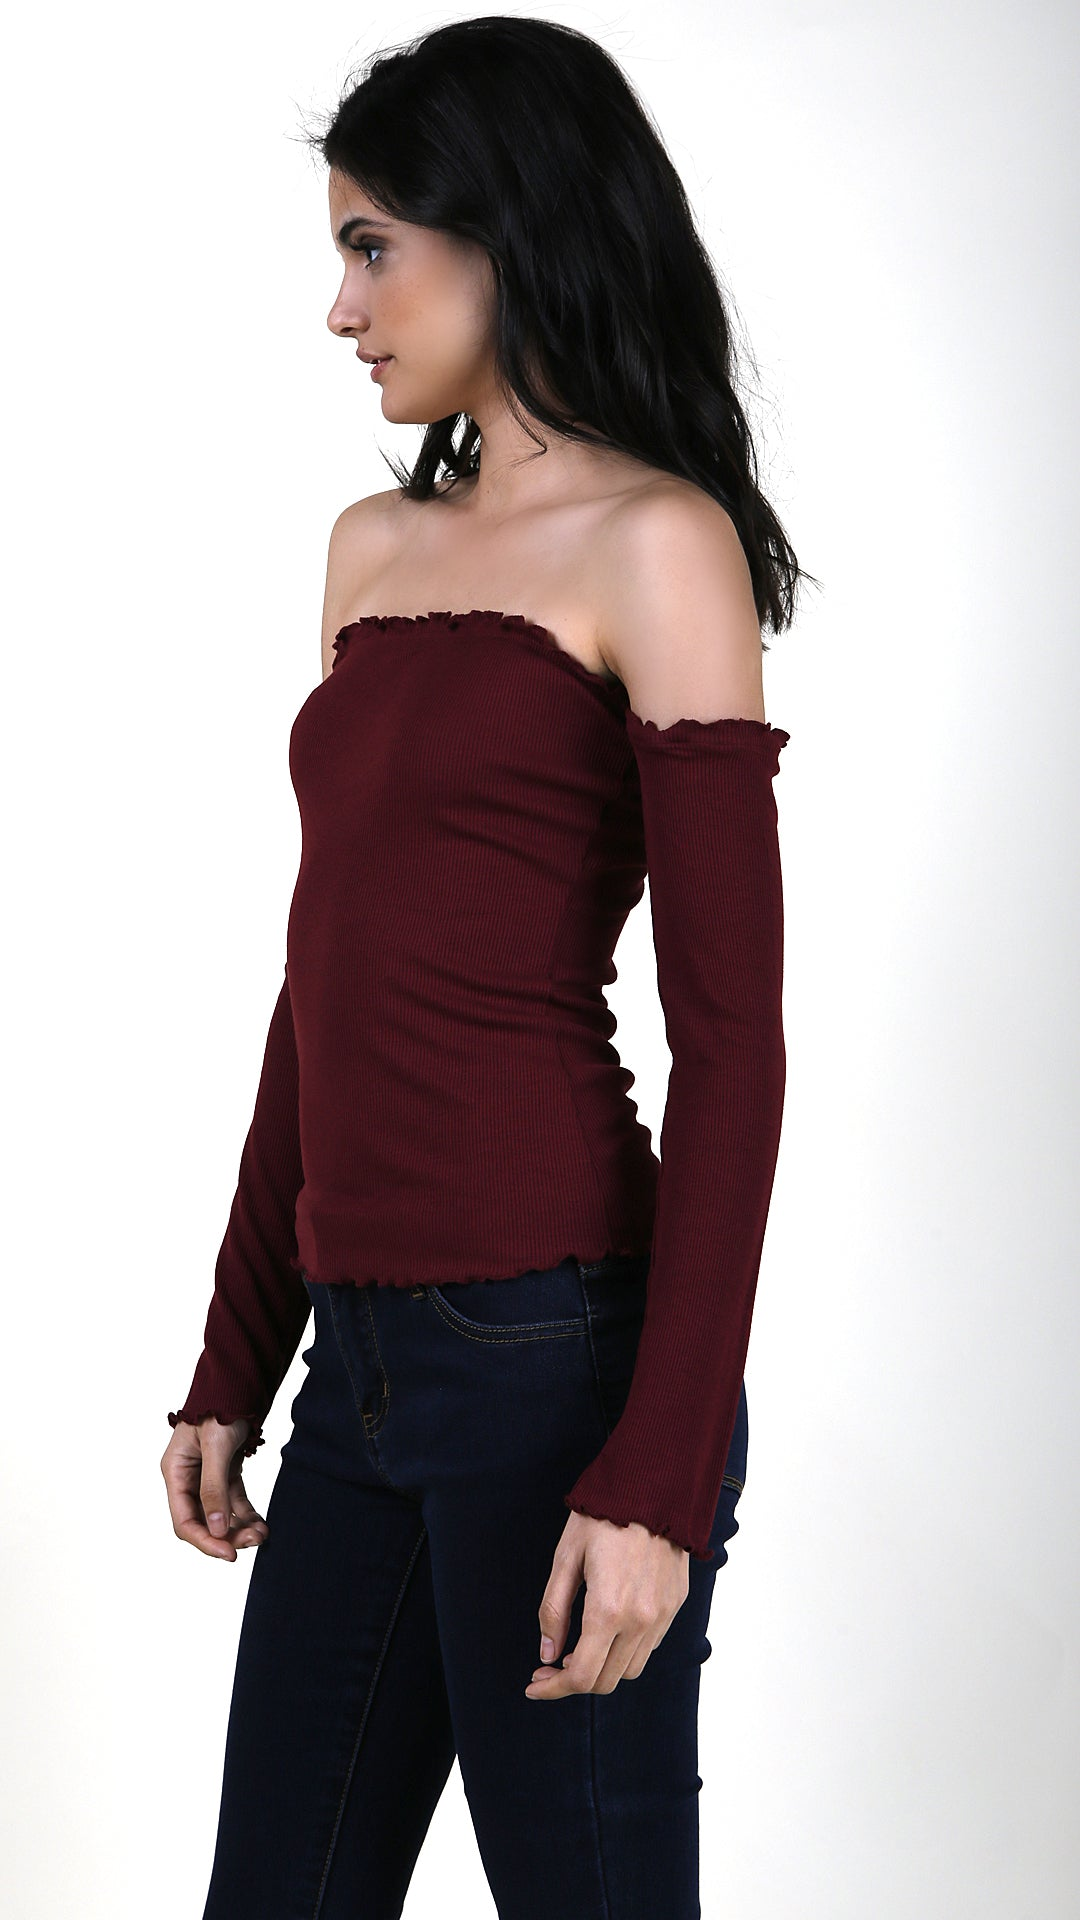 e8cebfdafe1ce Long Sleeve Ruffle Trimmed Off Shoulder Top - ANGL